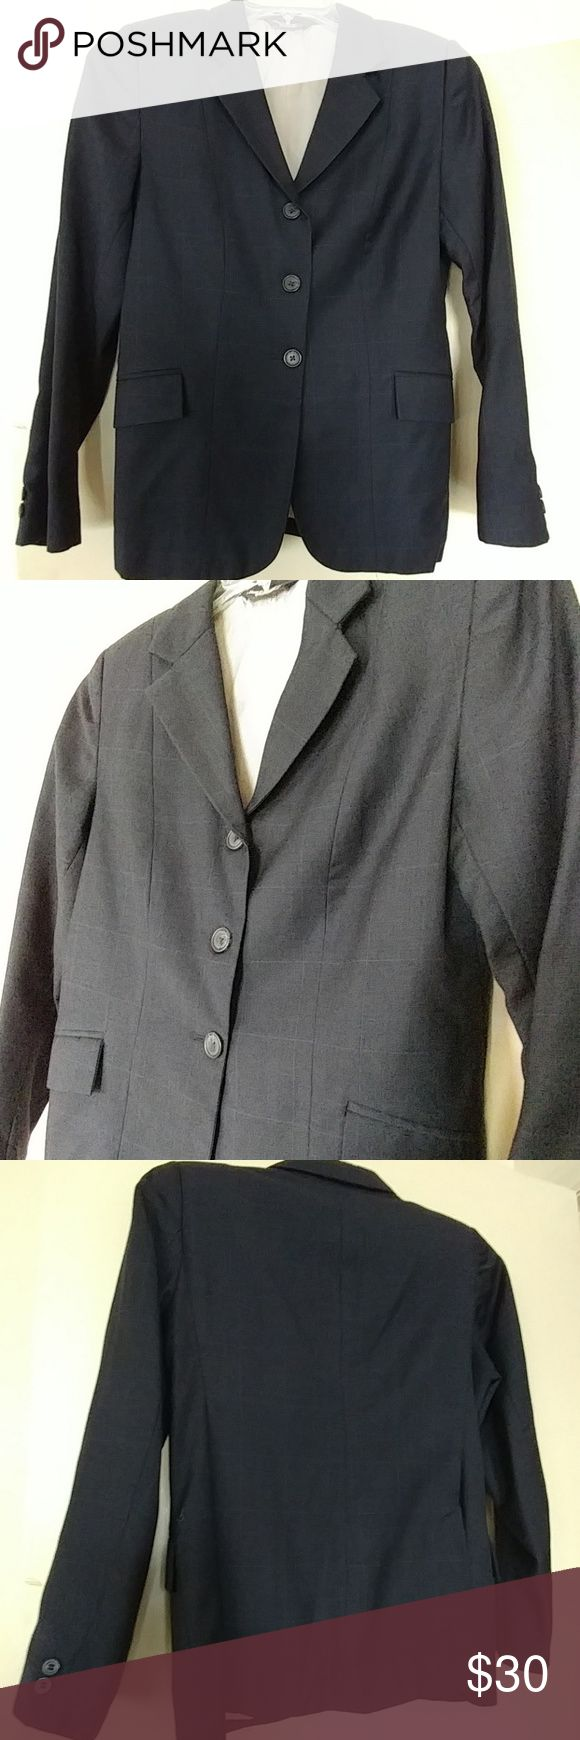 "WOMEN'S EQUESTRIAN RIDING SHOW BLAZER SIZE S/M ""THE ELITE"" FROM CANADA.  WOMENS EQUESTRIAN RIDING SHOW BLAZER SIZE S.  NAVY WITH LIGHT BLUE WINDOW PANE SQUARE PINSTRIPES.   No size label but fits S.  Fully lined.  Hand crafted.  Rear slits for mobility.  Button adorned sleeves.  Front pockets.  Excellent Used condition.  Worn twice.  Beautiful blazer for any occasion. English Factory Jackets & Coats Blazers"